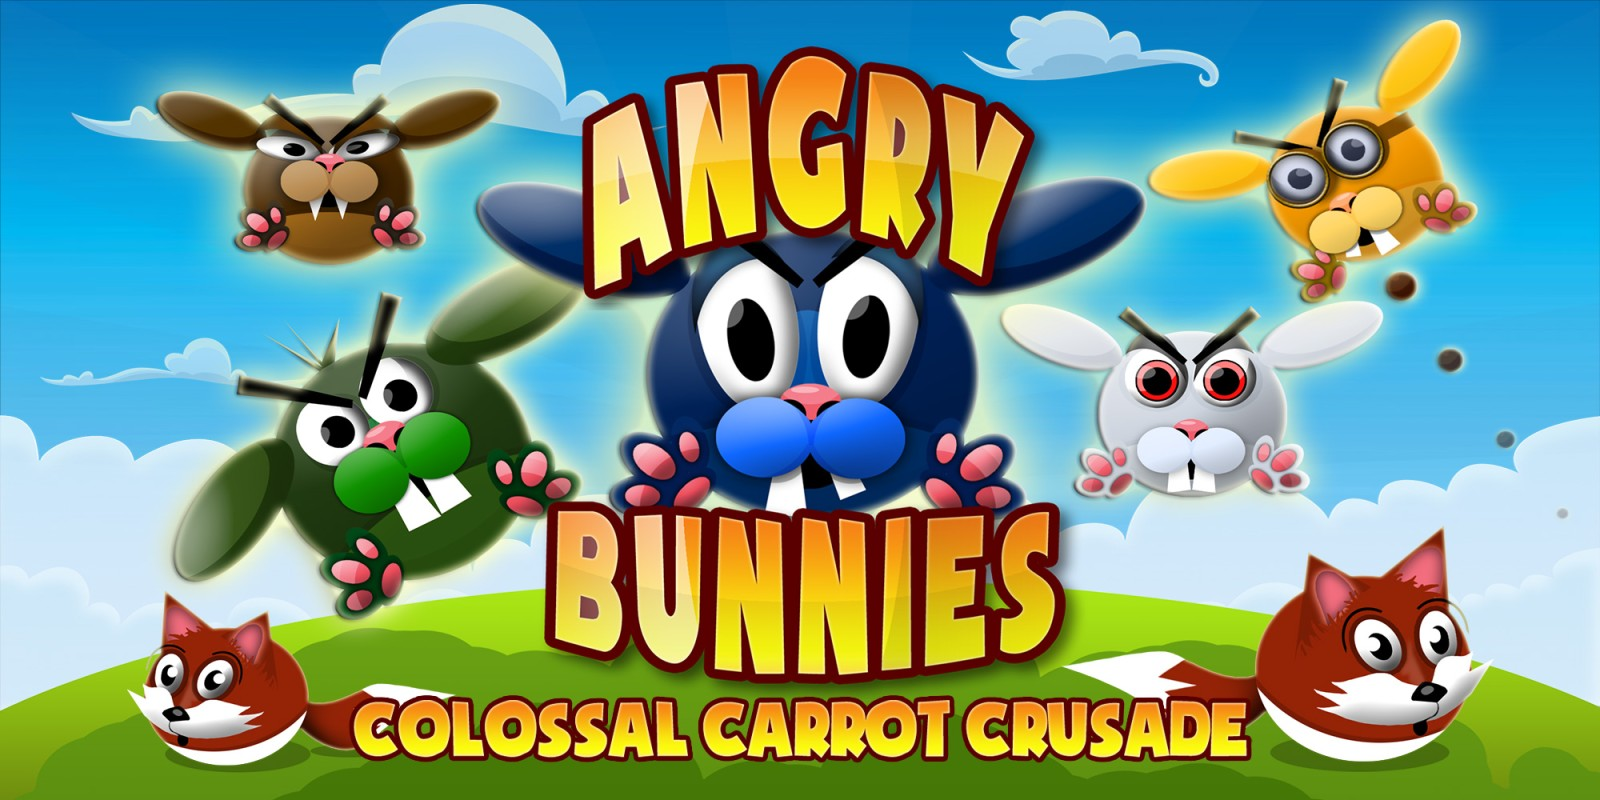 Angry Bunnies: Colossal Carrot Crusade